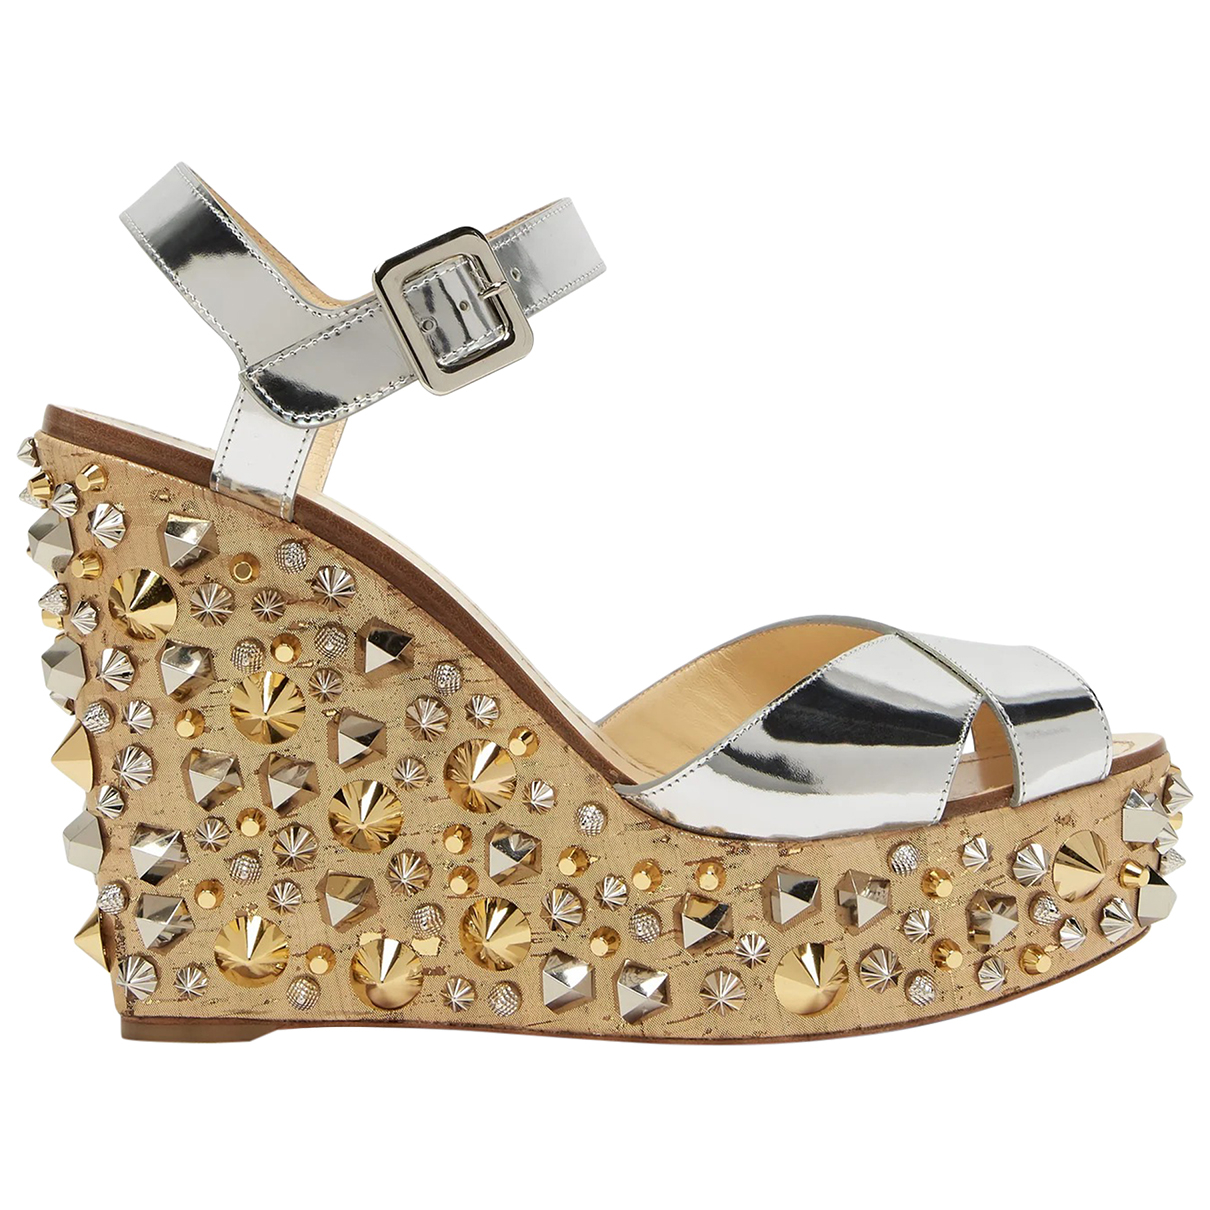 Christian Louboutin \N Silver Patent leather Sandals for Women 35 EU